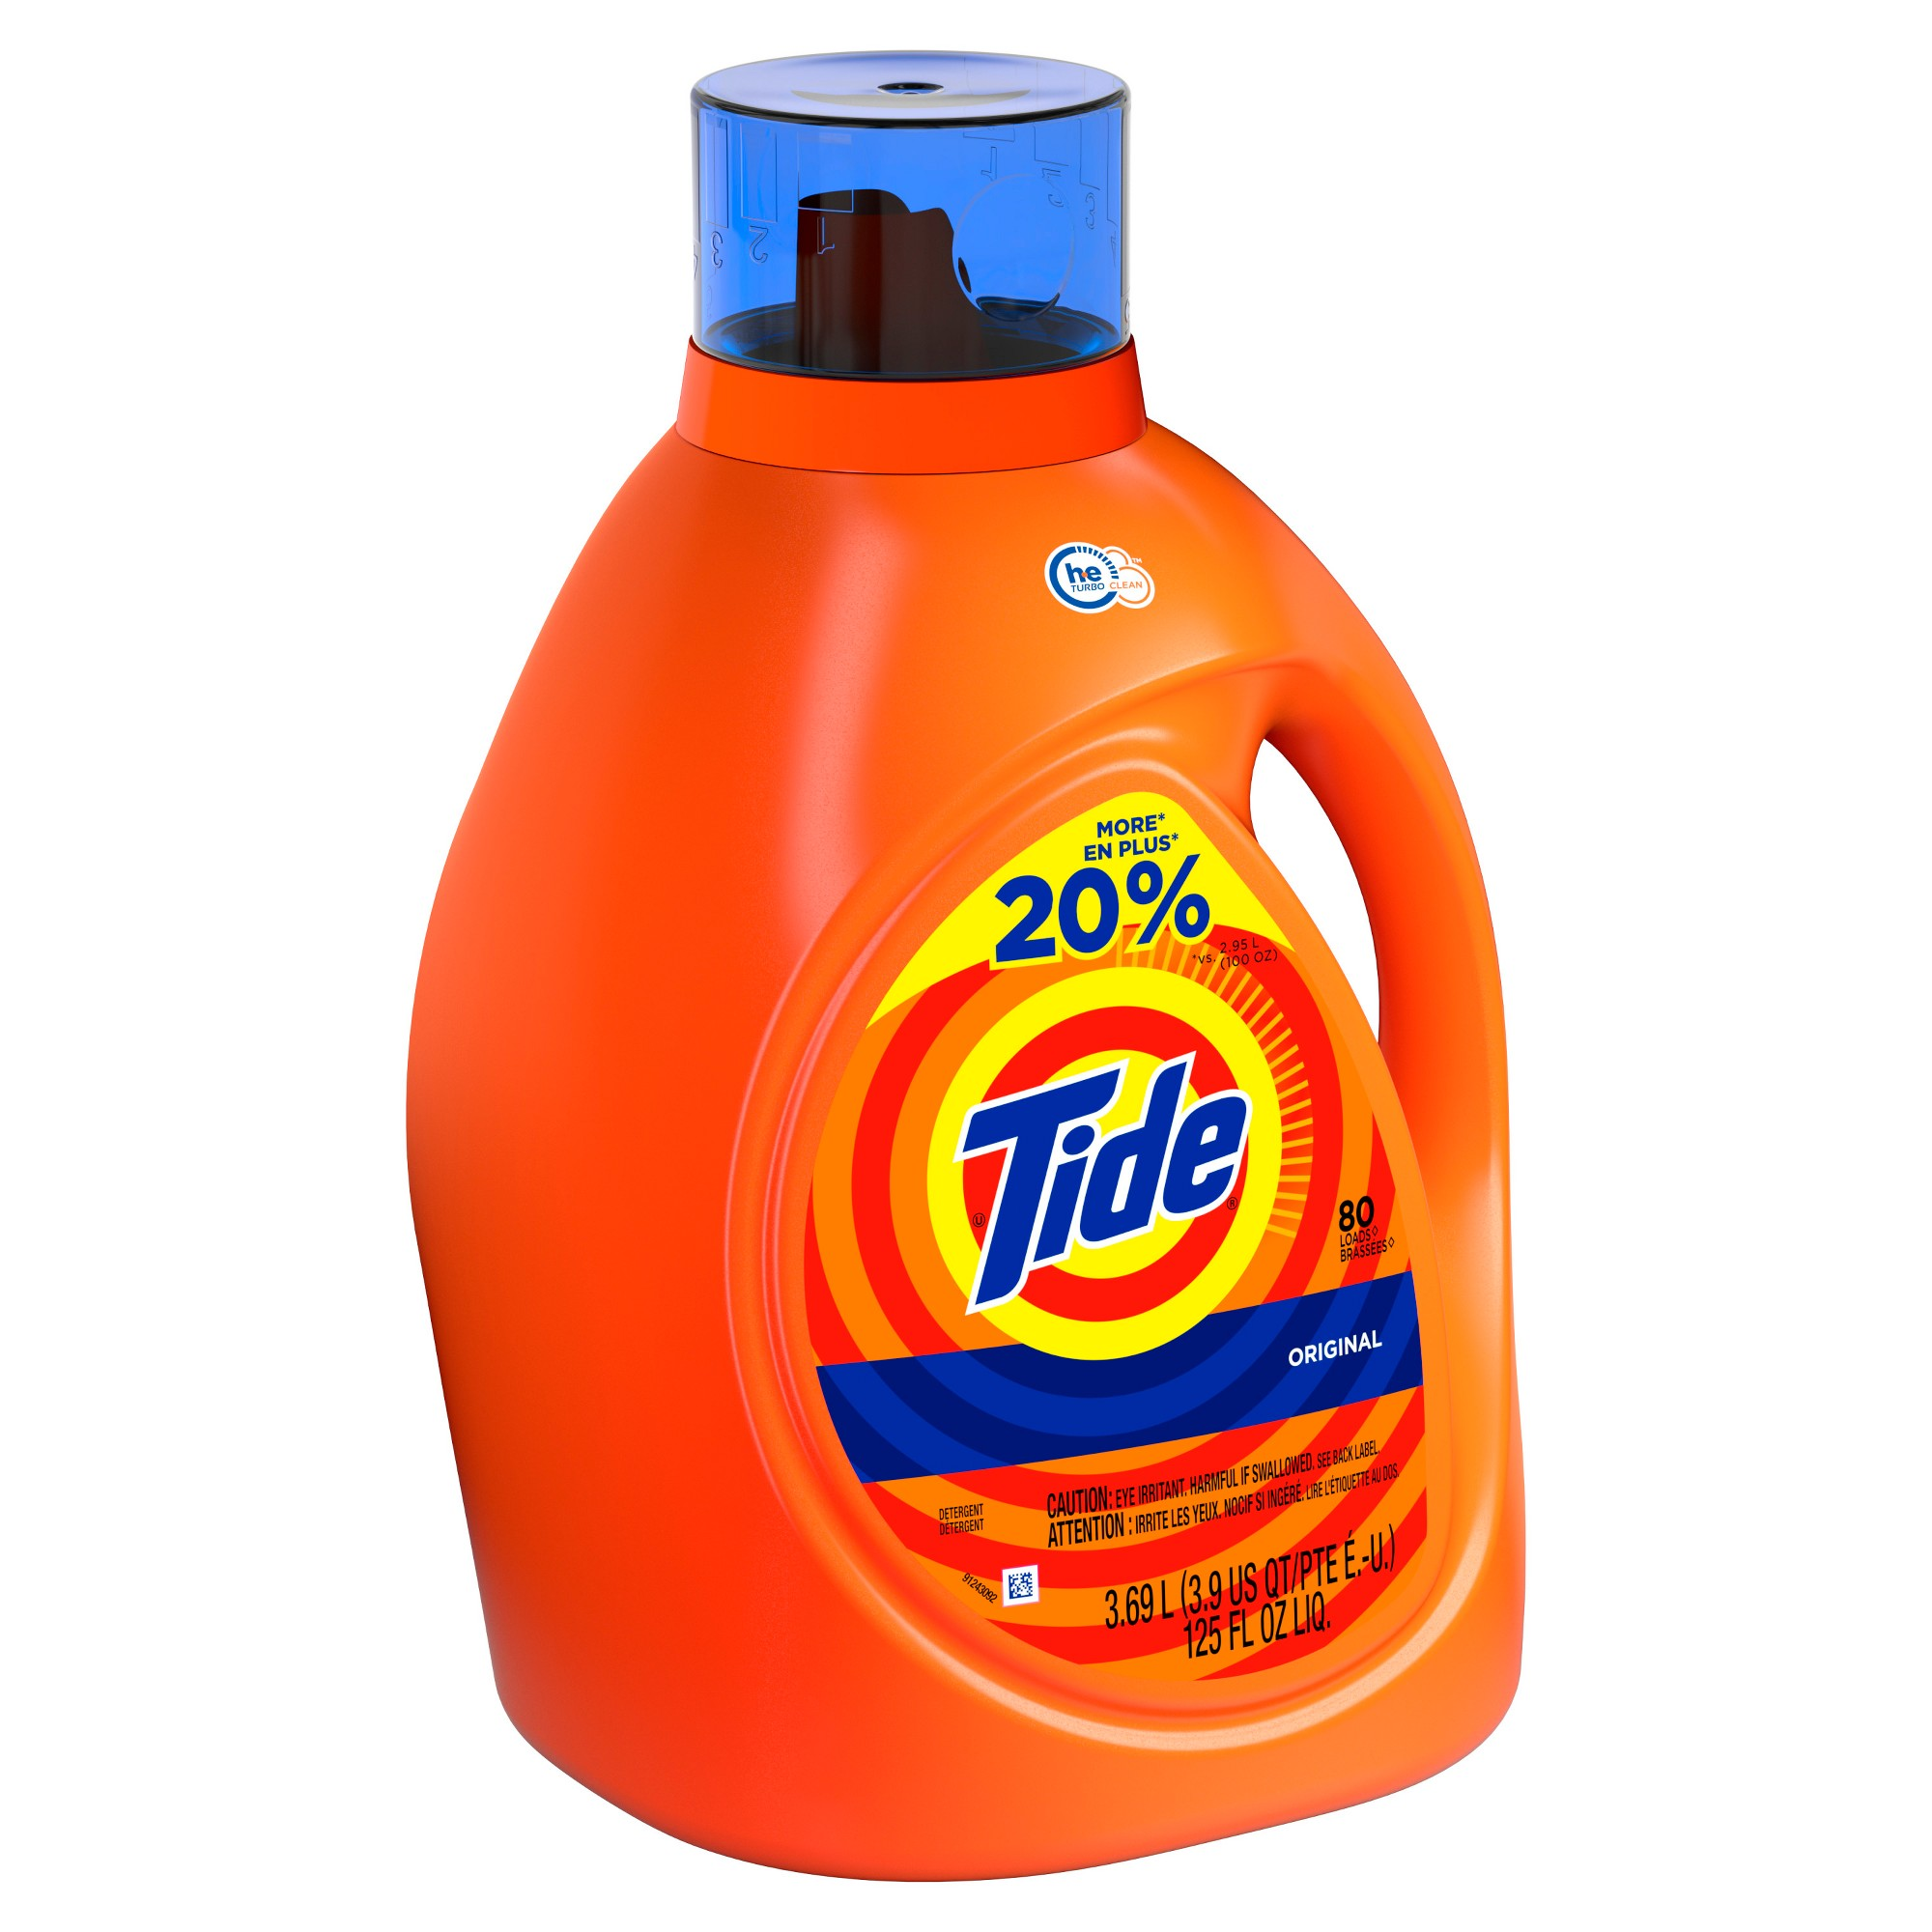 Tide Original High Efficiency Liquid Laundry Detergent 125 Fl Oz Laundry Liquid Liquid Laundry Detergent Laundry Detergent